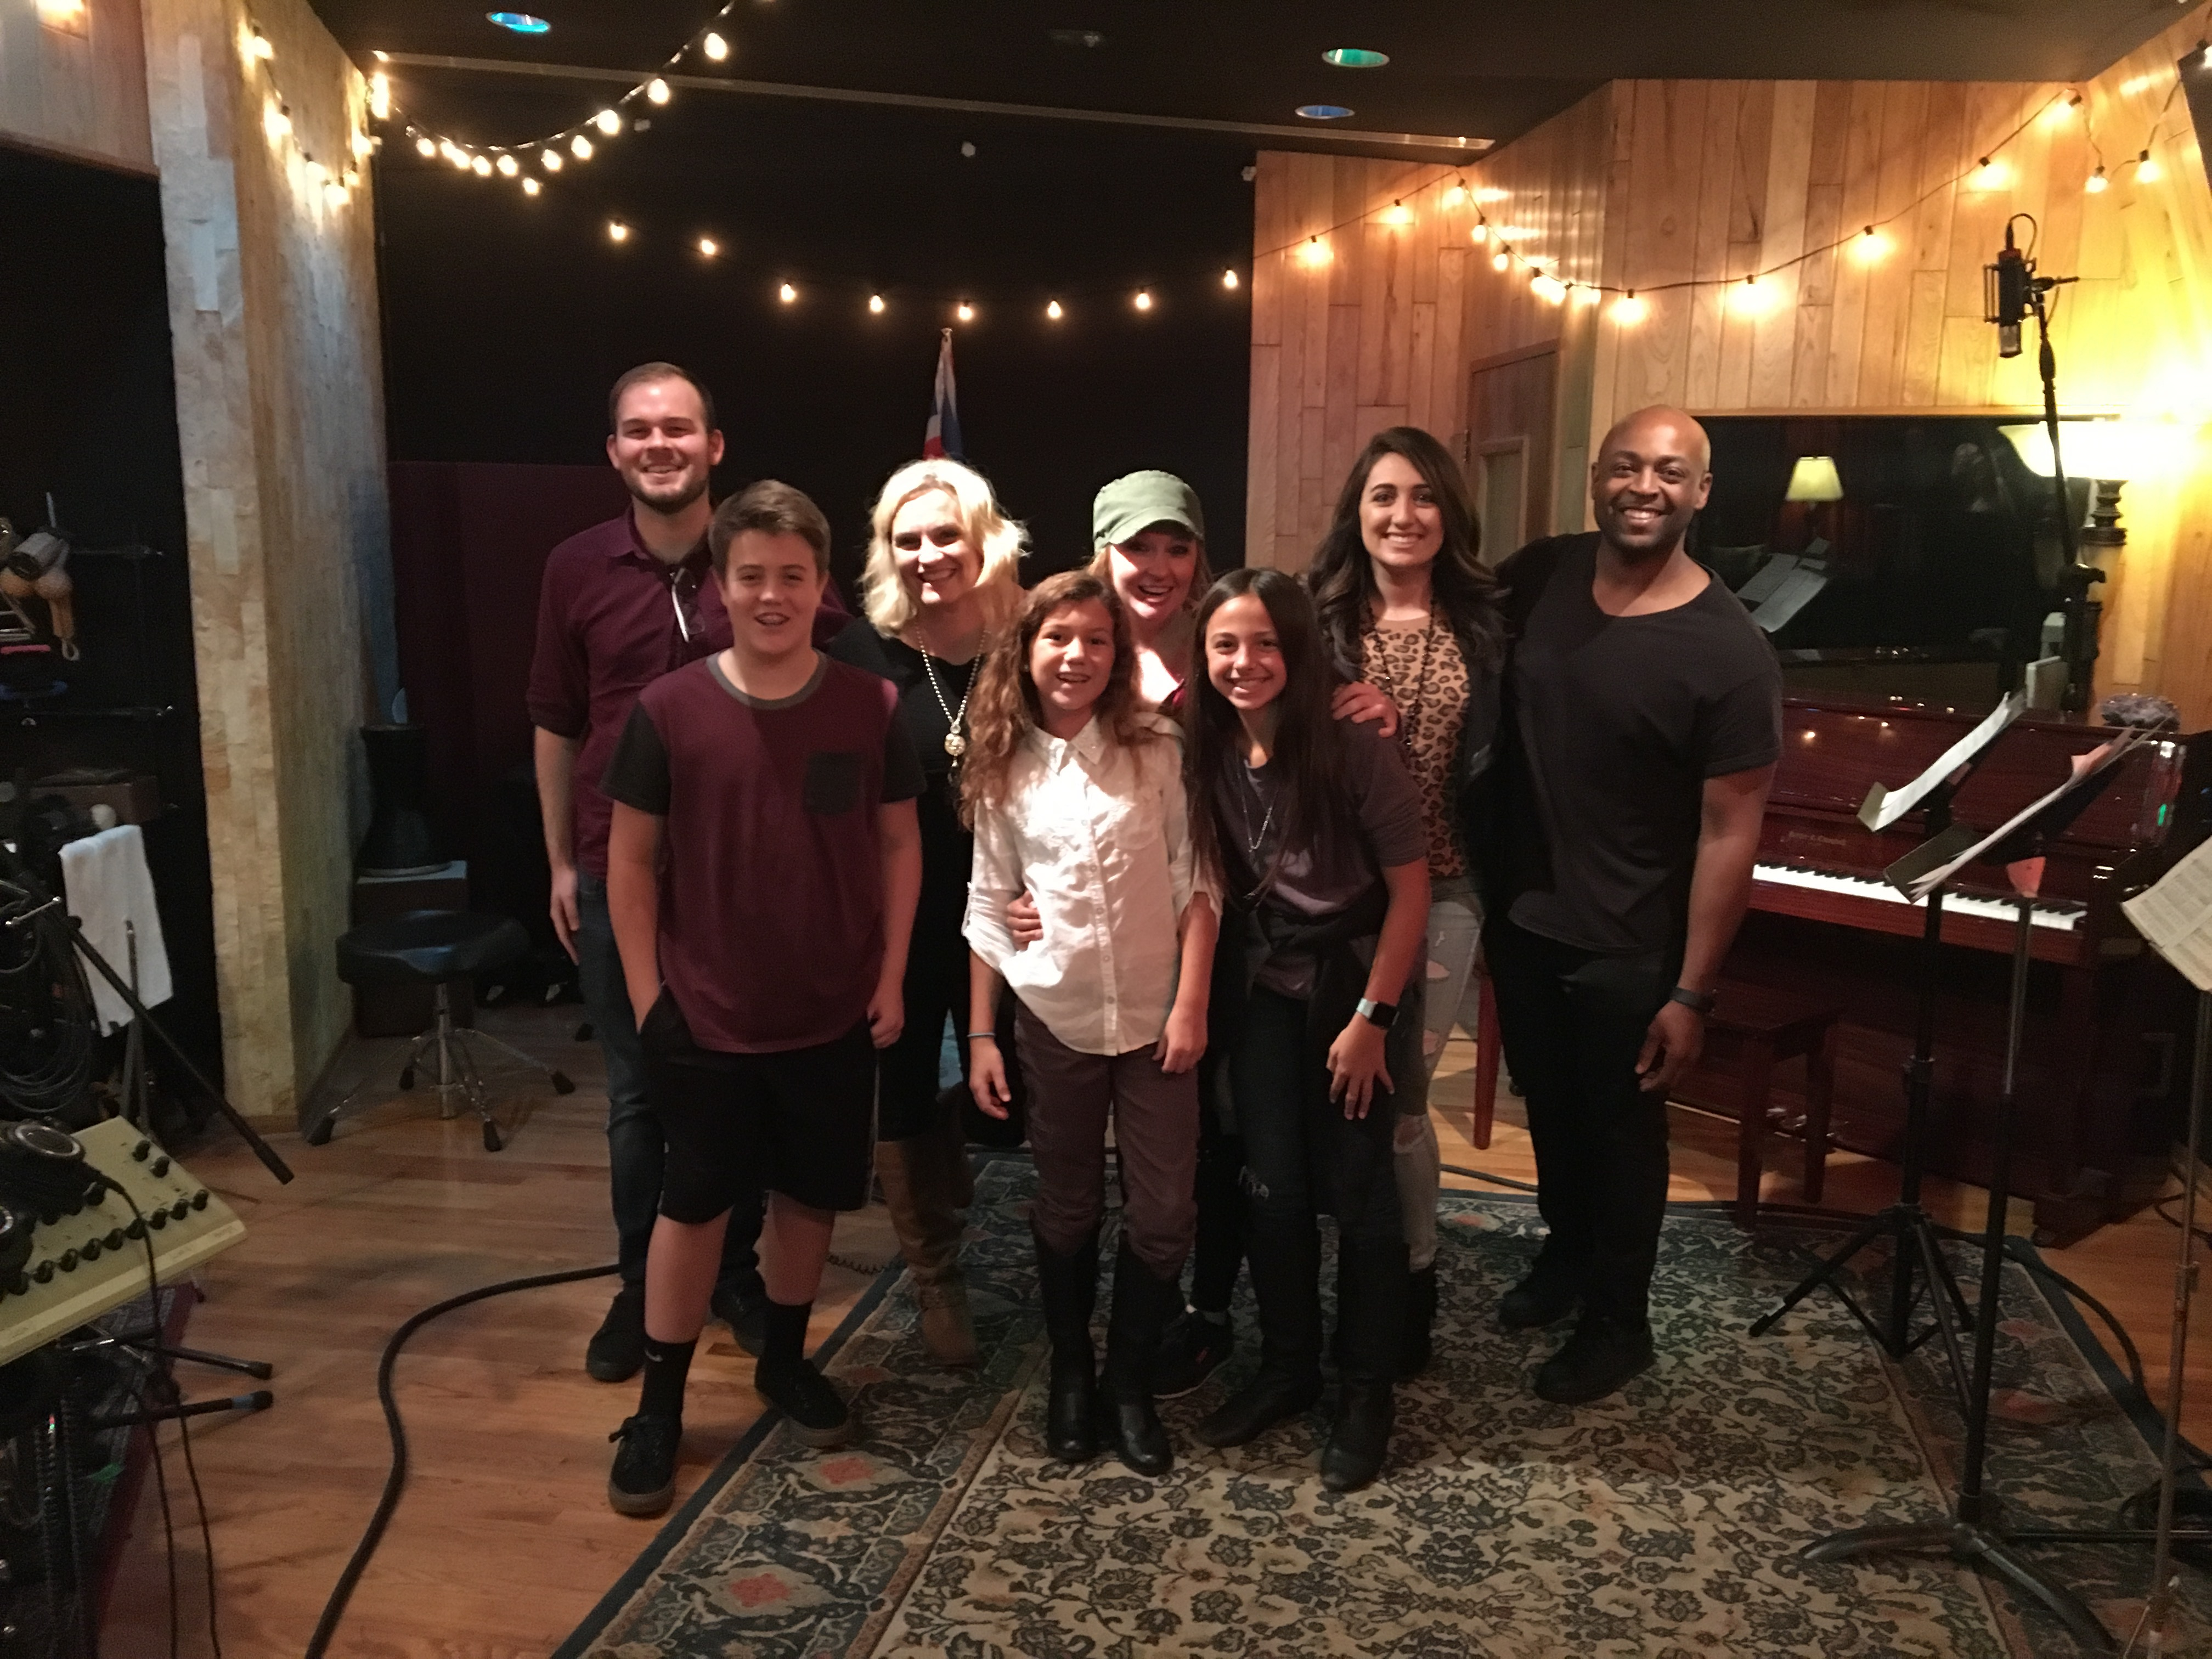 Caleigh Madison: The Flash Recording Session Group